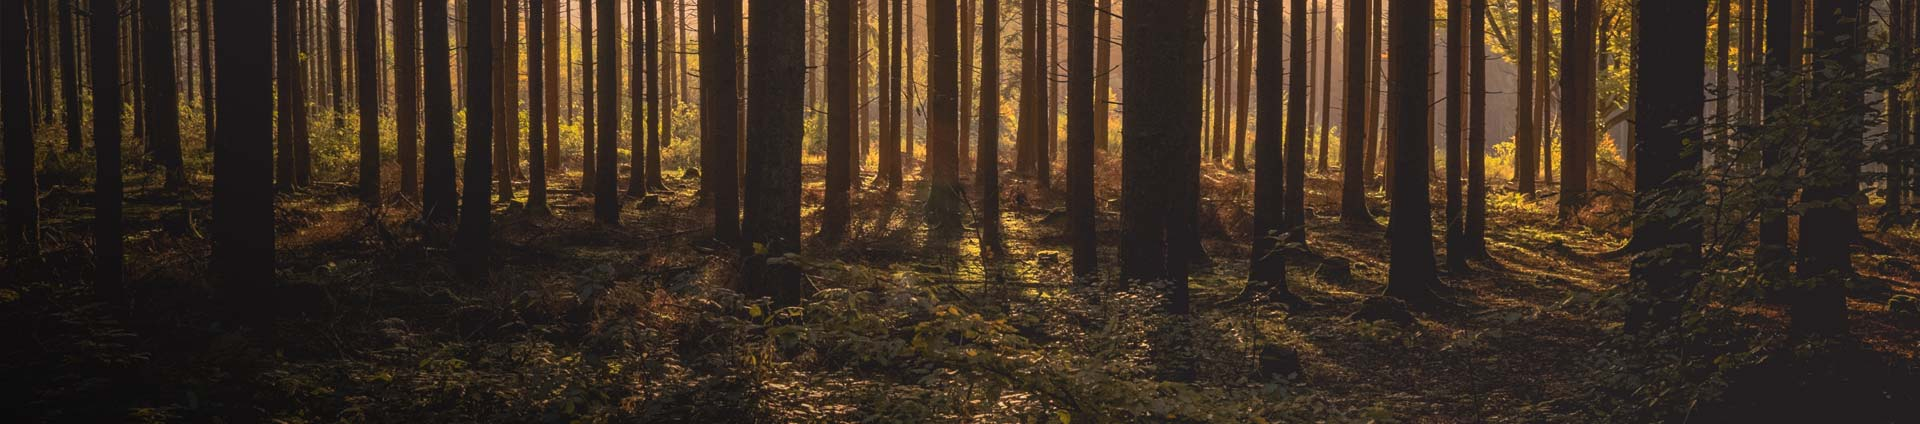 header-forestry-investment